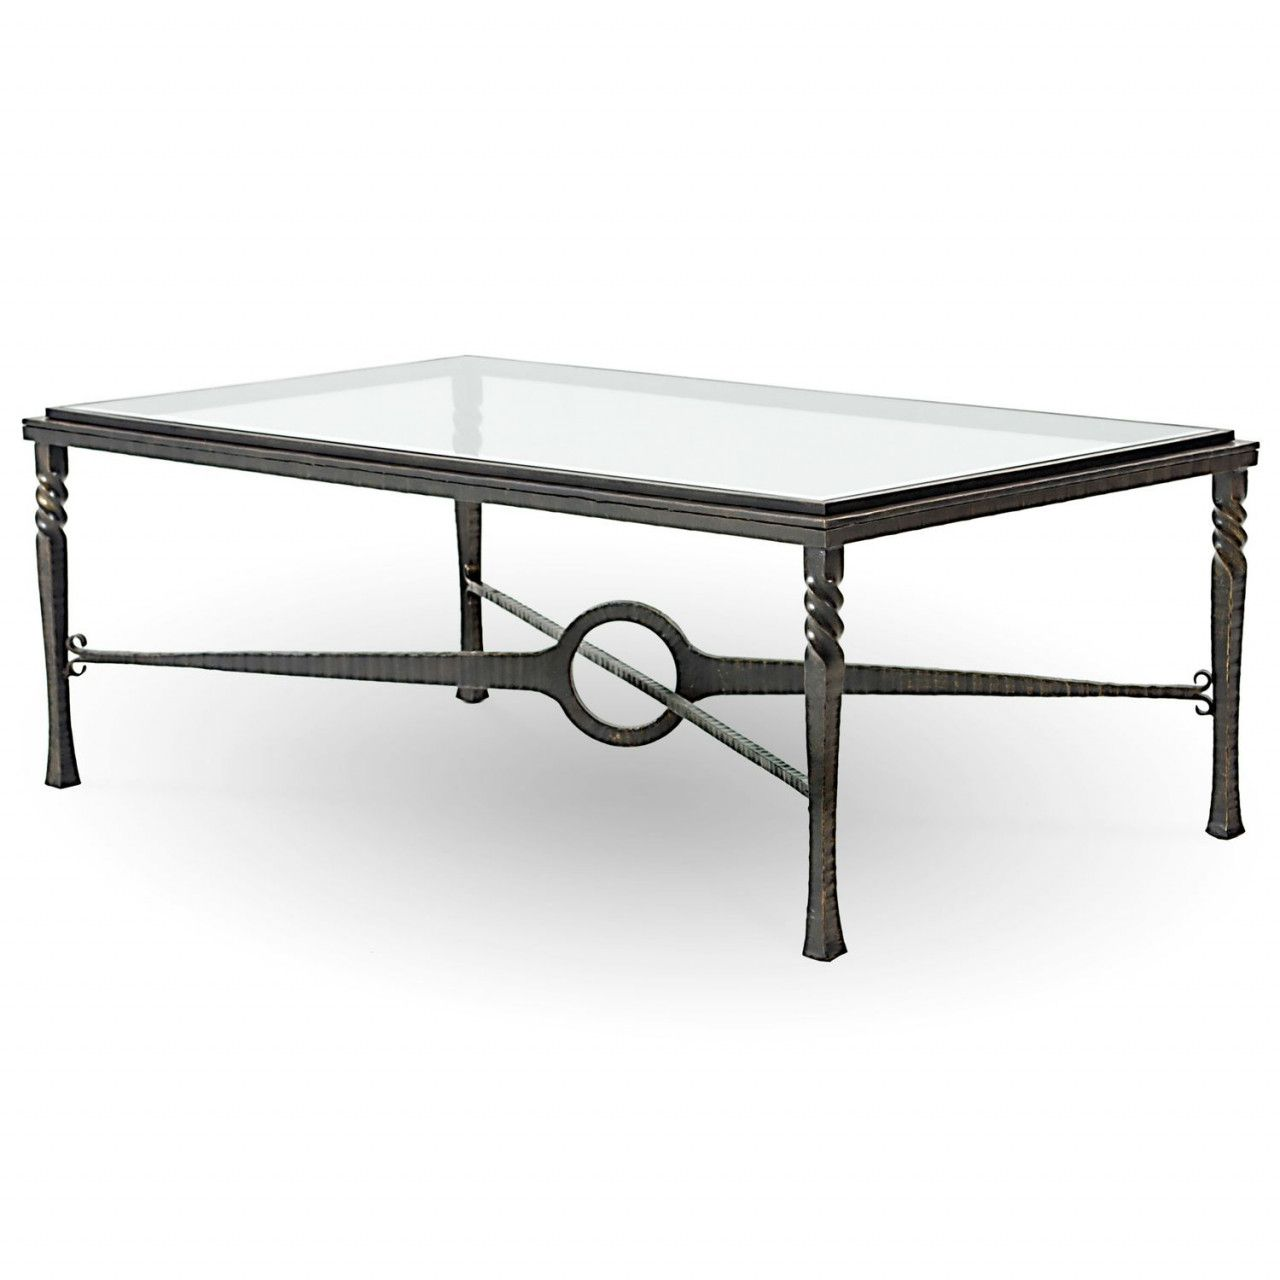 28 Unique Glass Topped Coffee Tables Wrought Iron 2020 Iron Coffee Table Glass Top Coffee Table Wrought Iron Glass [ 1280 x 1280 Pixel ]